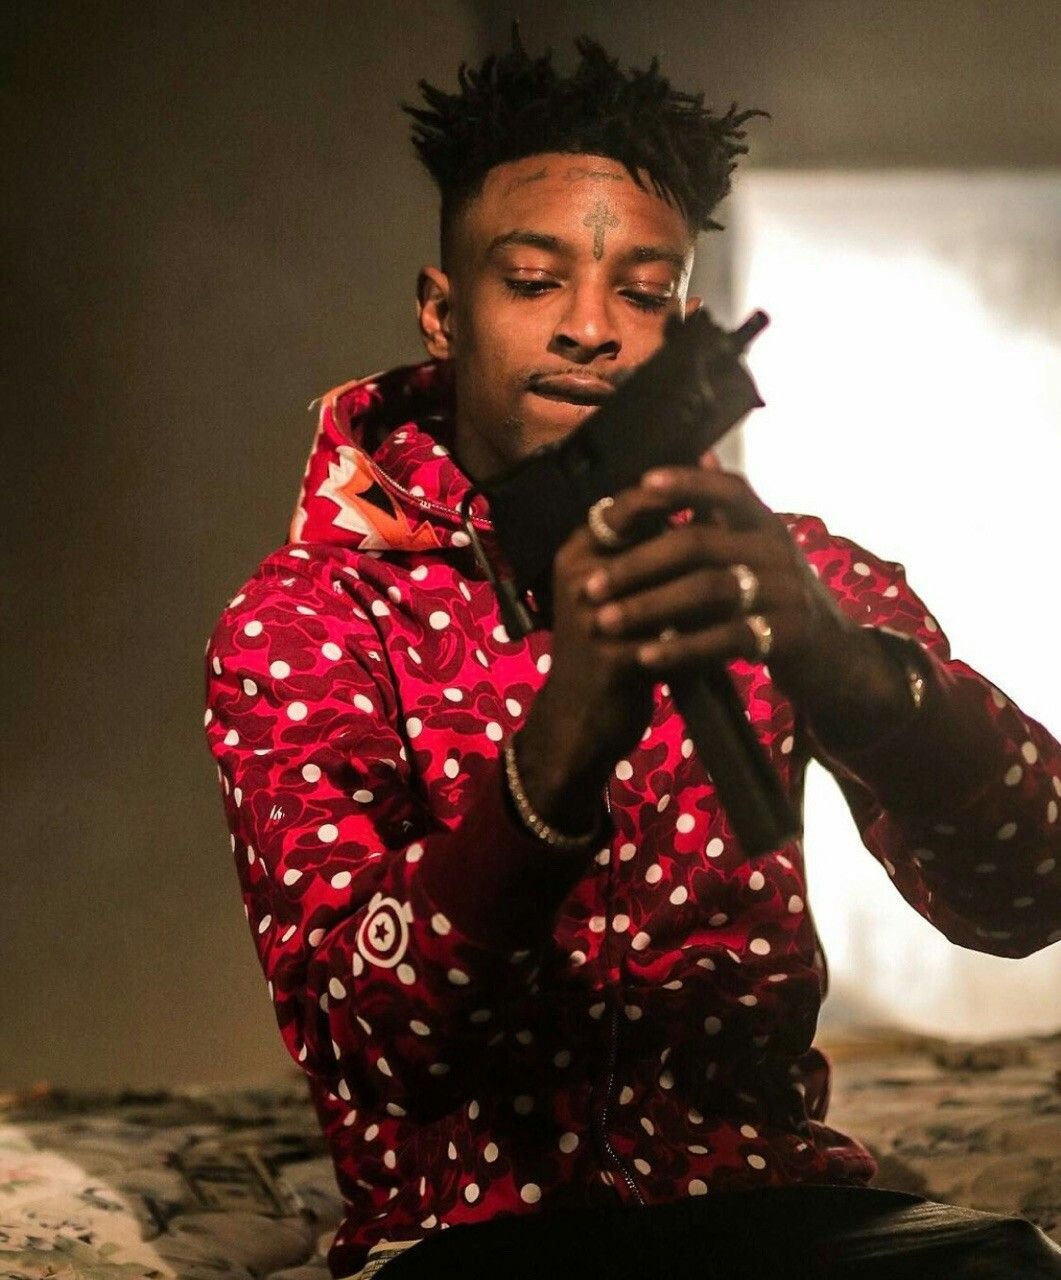 21 SAVAGE bape in 2019 Savage, Savage wallpapers